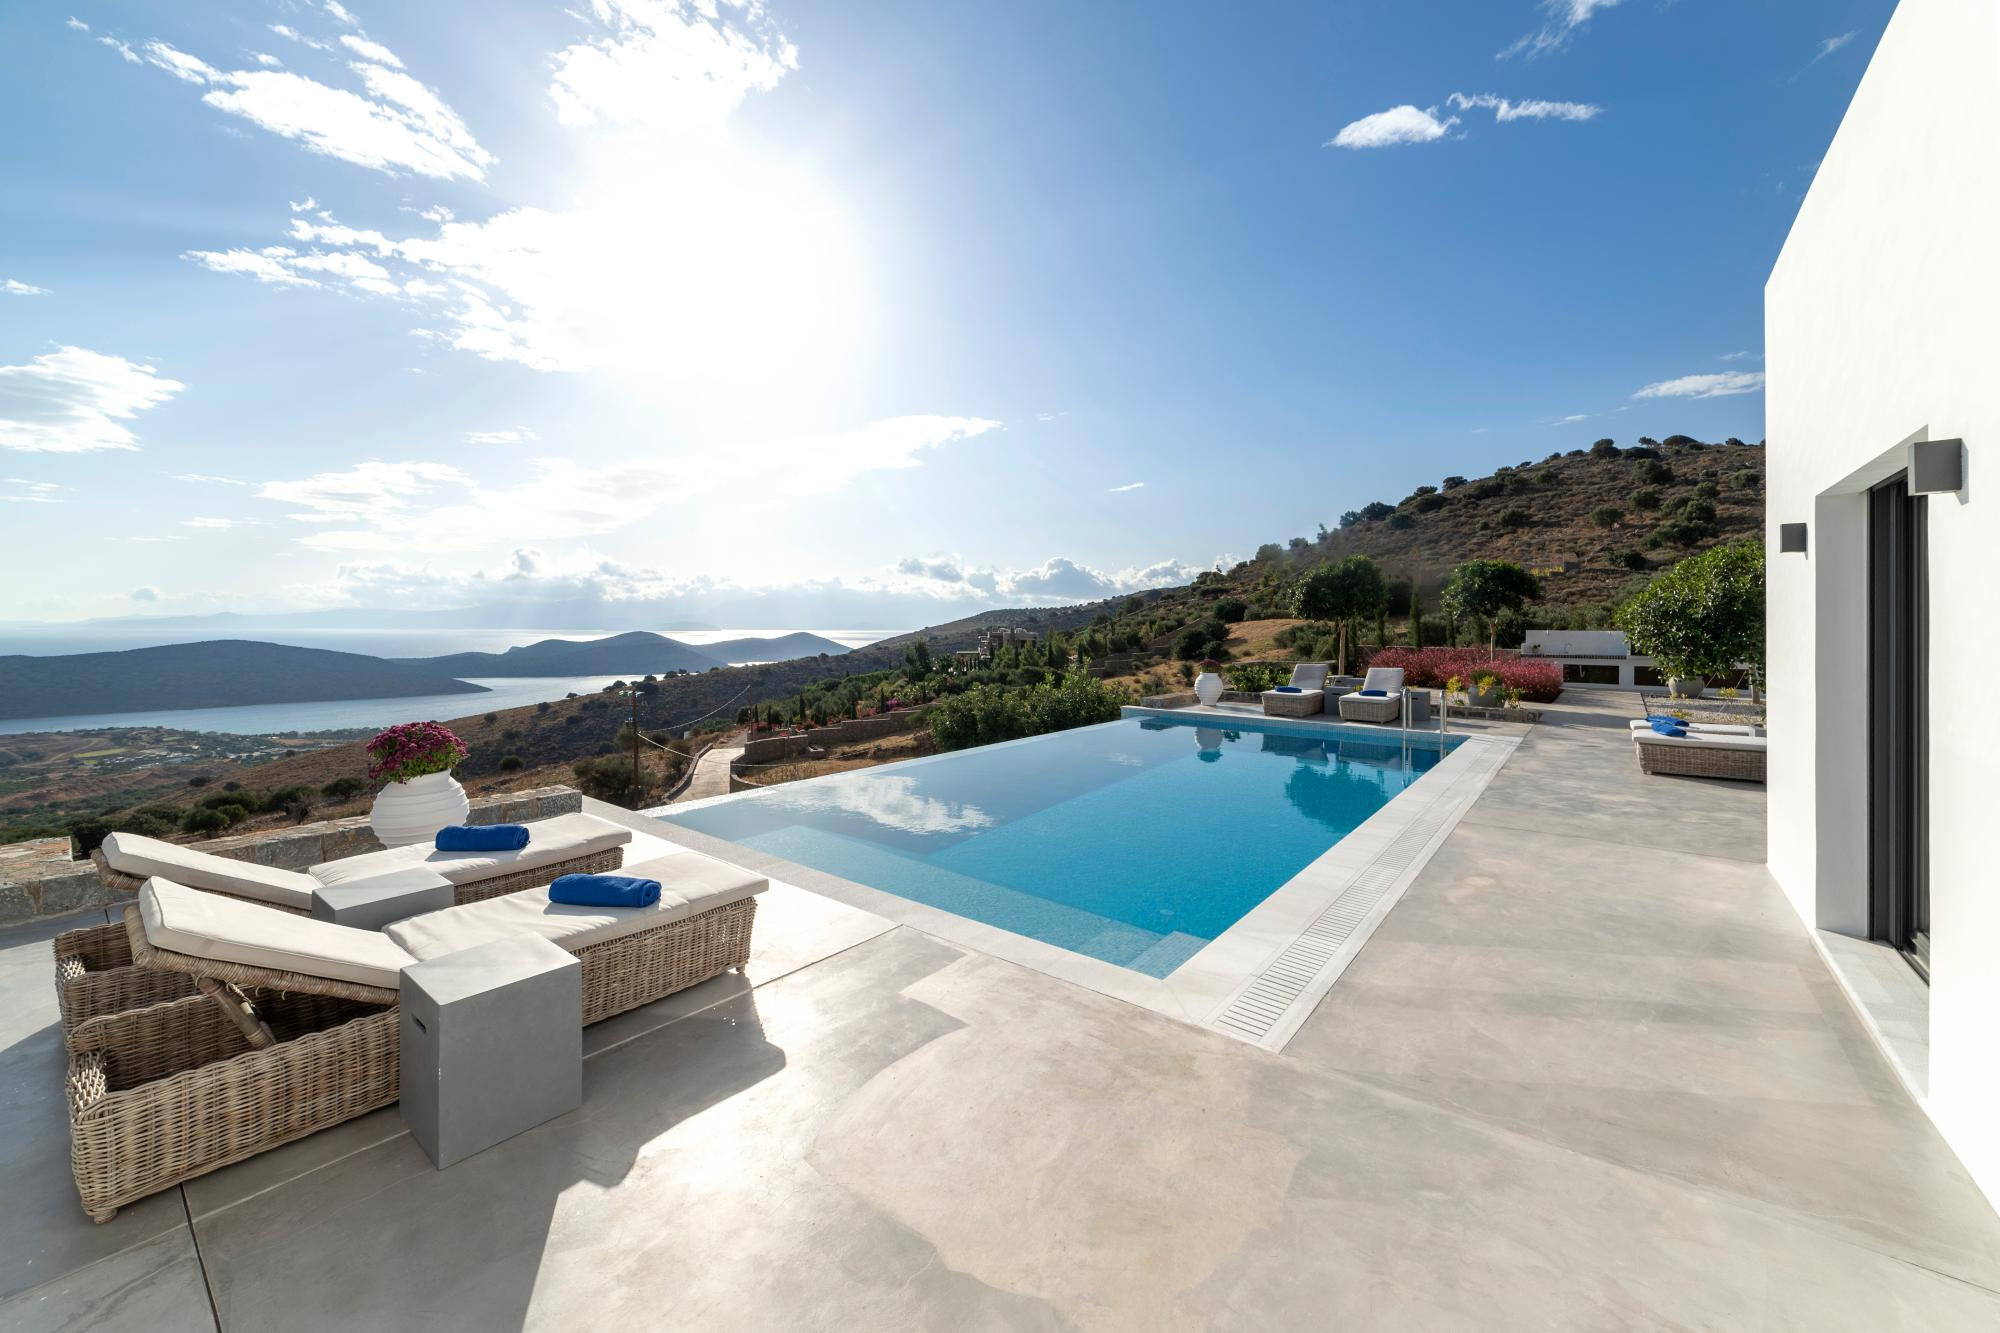 Luxury single storey villa with pool, overlooking the island Spinalonga